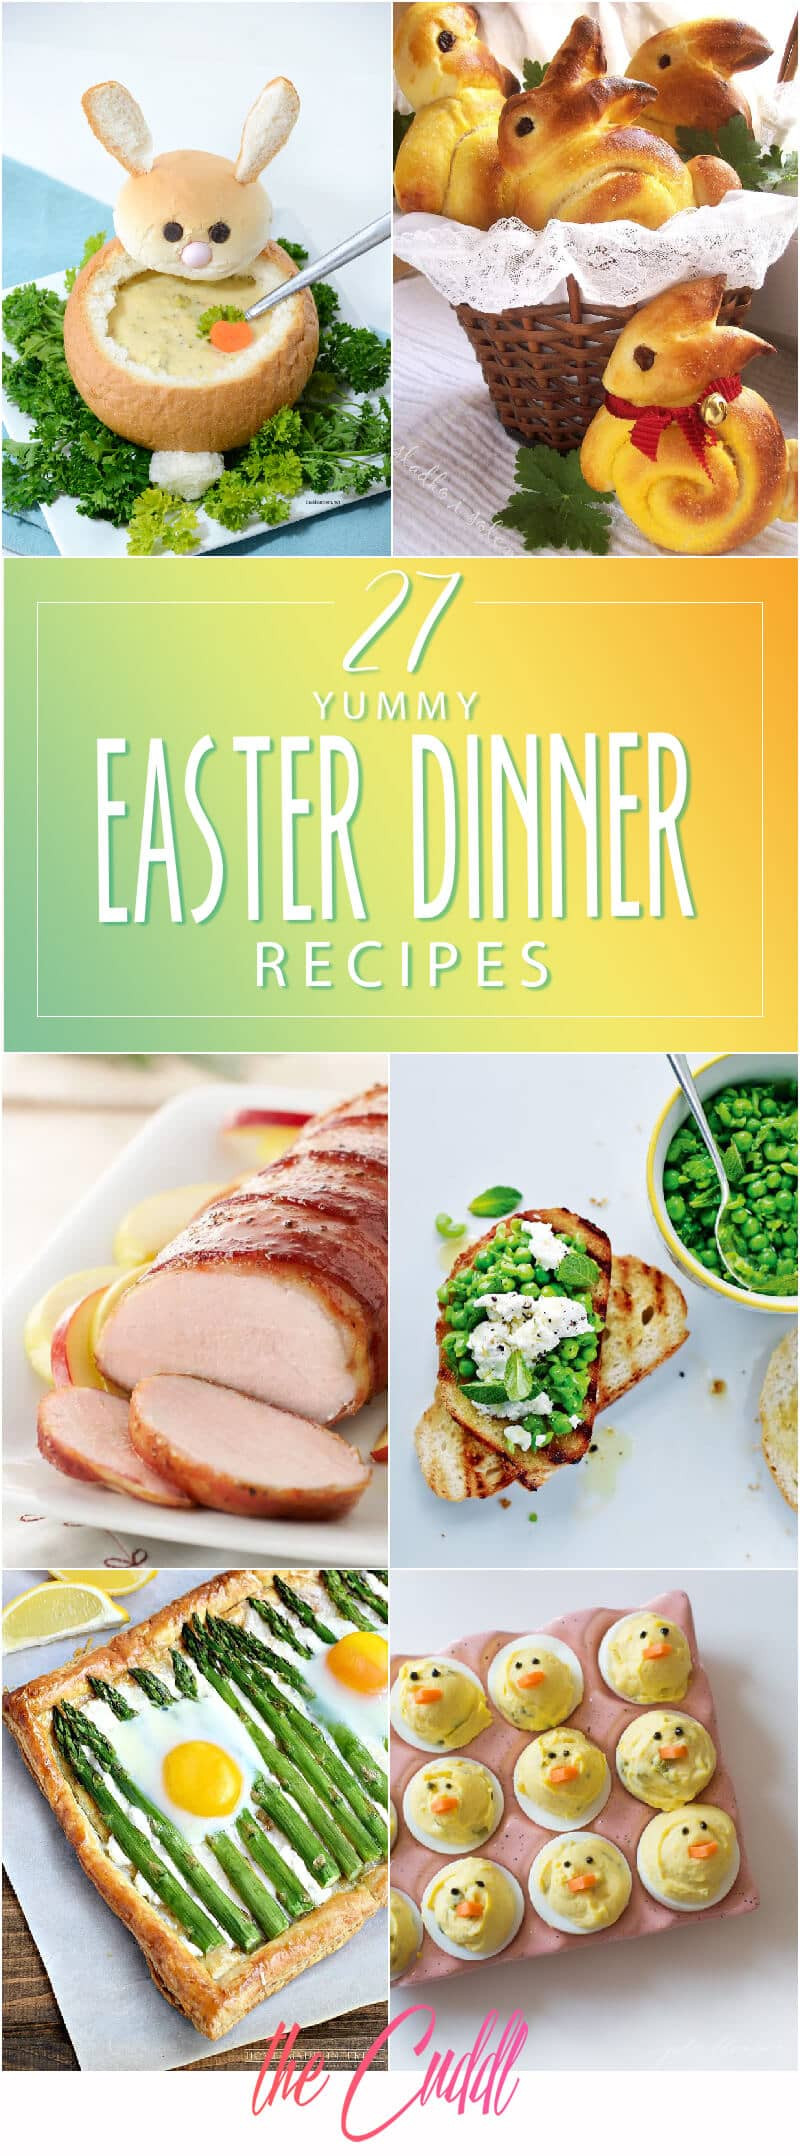 Easter Dinner For A Crowd  27 Yummy Easter Dinner Ideas to Wow Your Guests